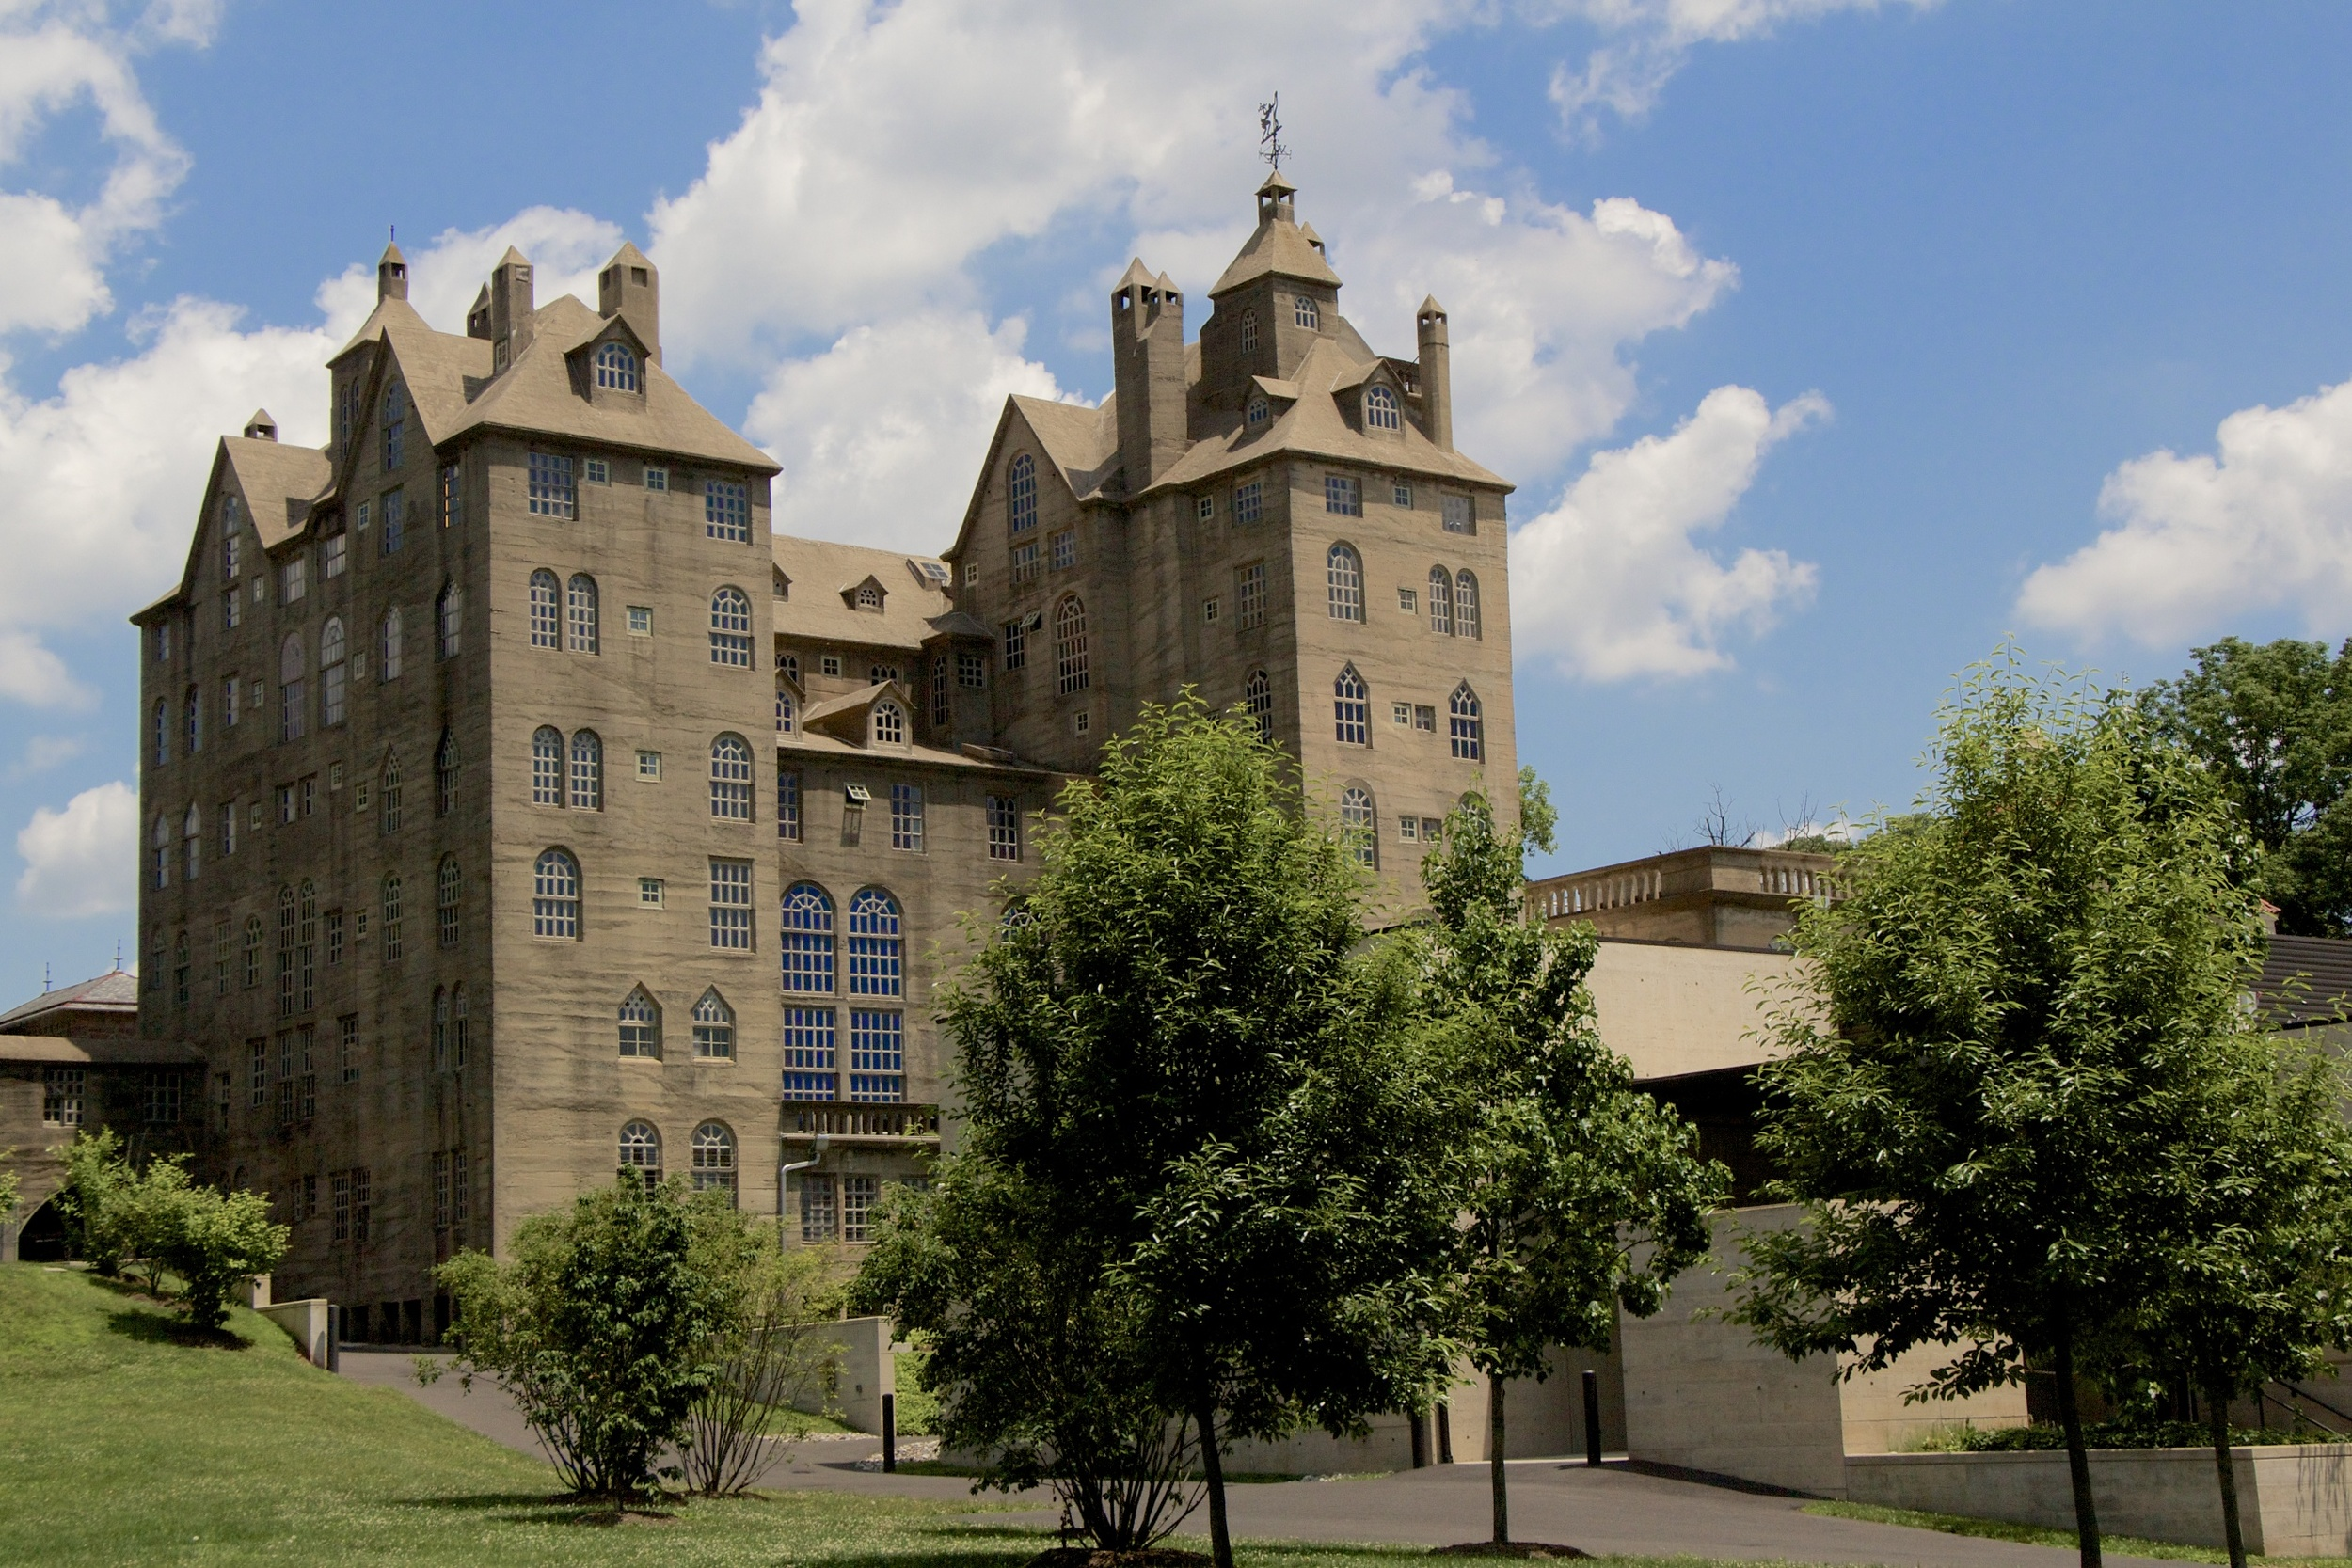 Figure 4: Mercer Museum in Bucks County, Pennsylvania. Photograph by Ed Gyllenhaal.